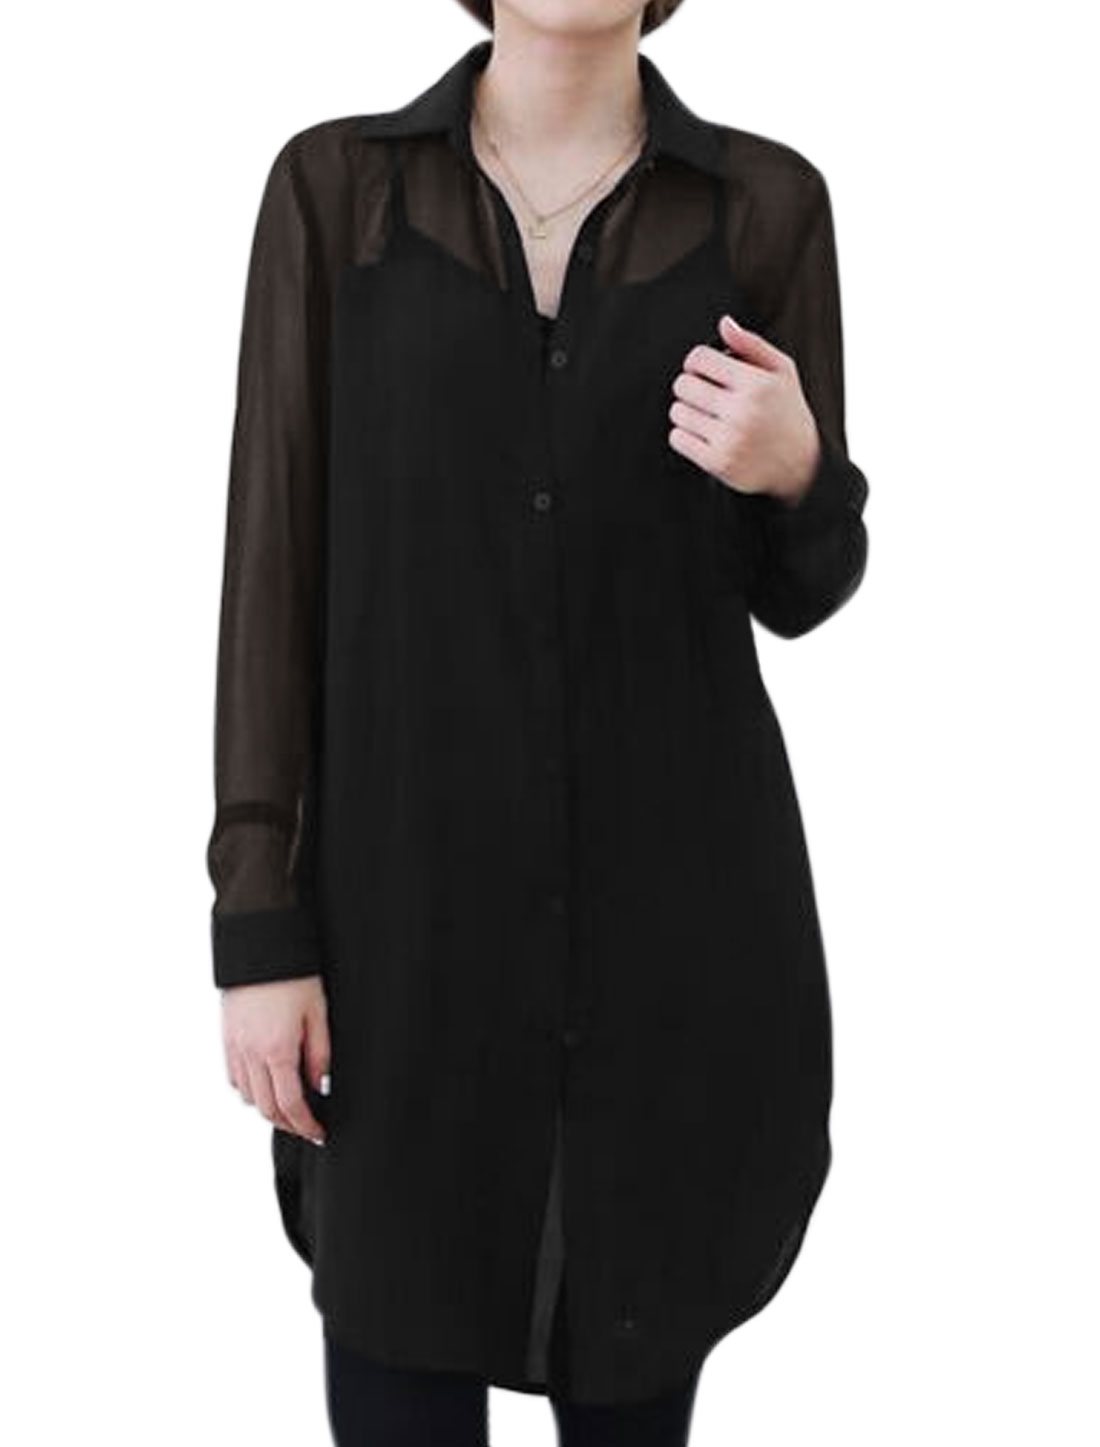 Ladies Collared Long Sleeves Chiffon Tunic Shirt Black M